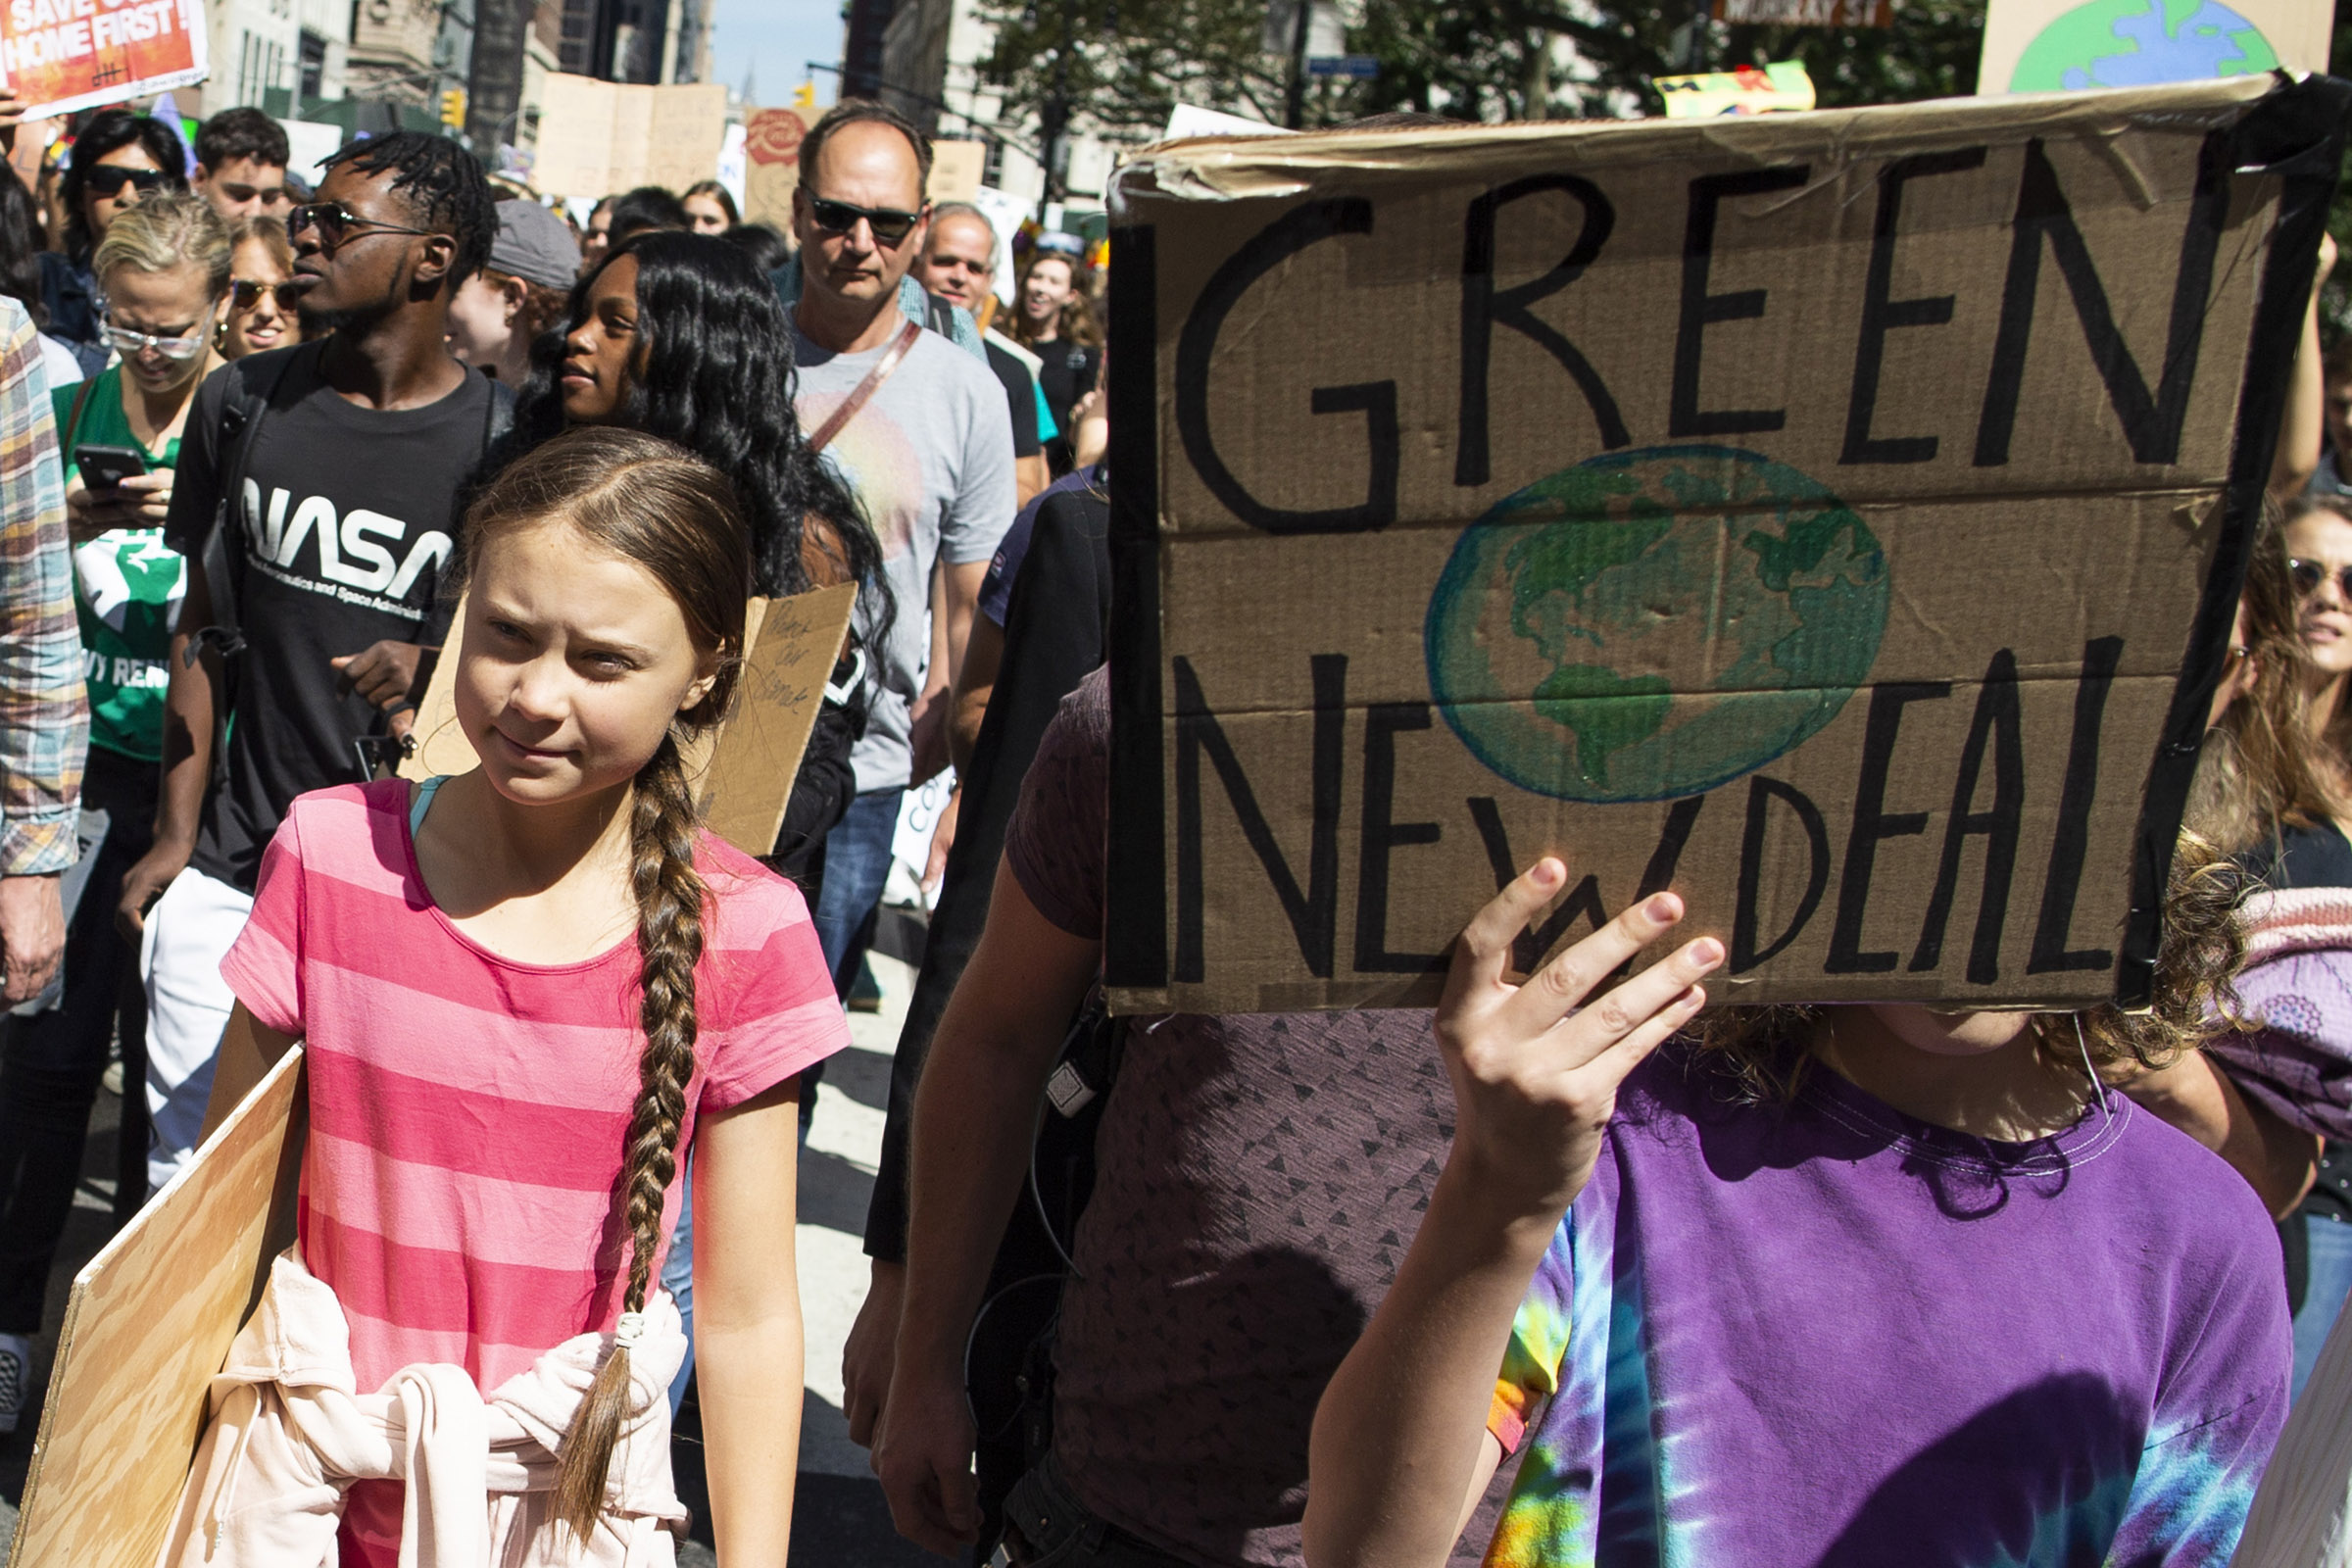 Swedish environmental activist Greta Thunberg, left, takes part during the Climate Strike, Friday, Sept. 20, 2019 in New York.